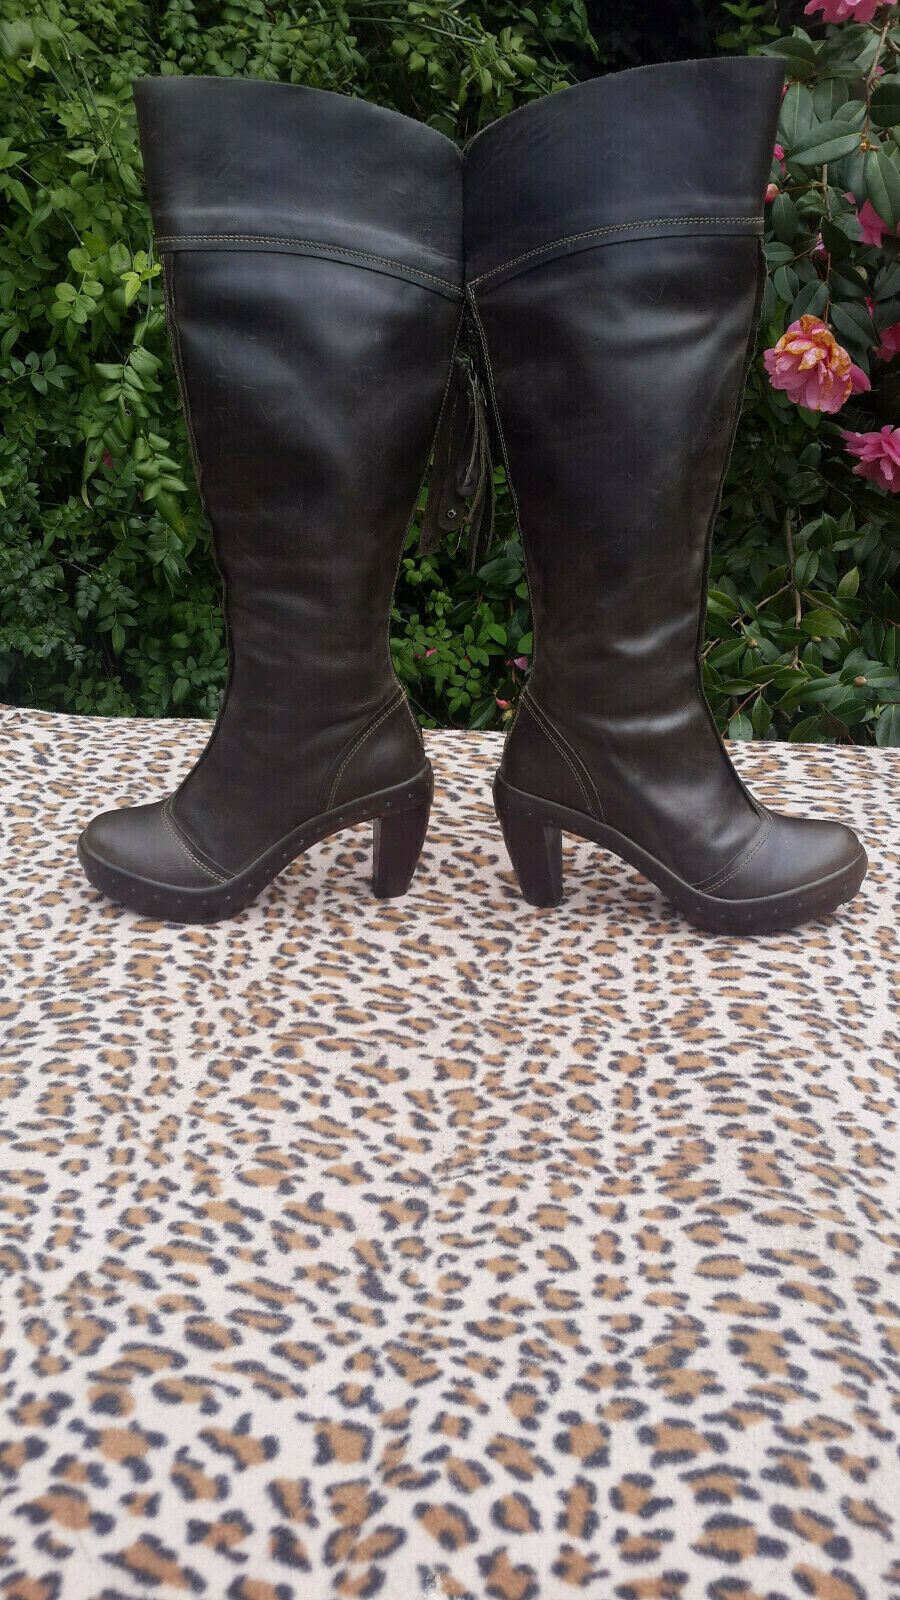 Fly London Taupe Green high heeled heeled heeled leather platform boots UK 5 EU 38 84f6ca